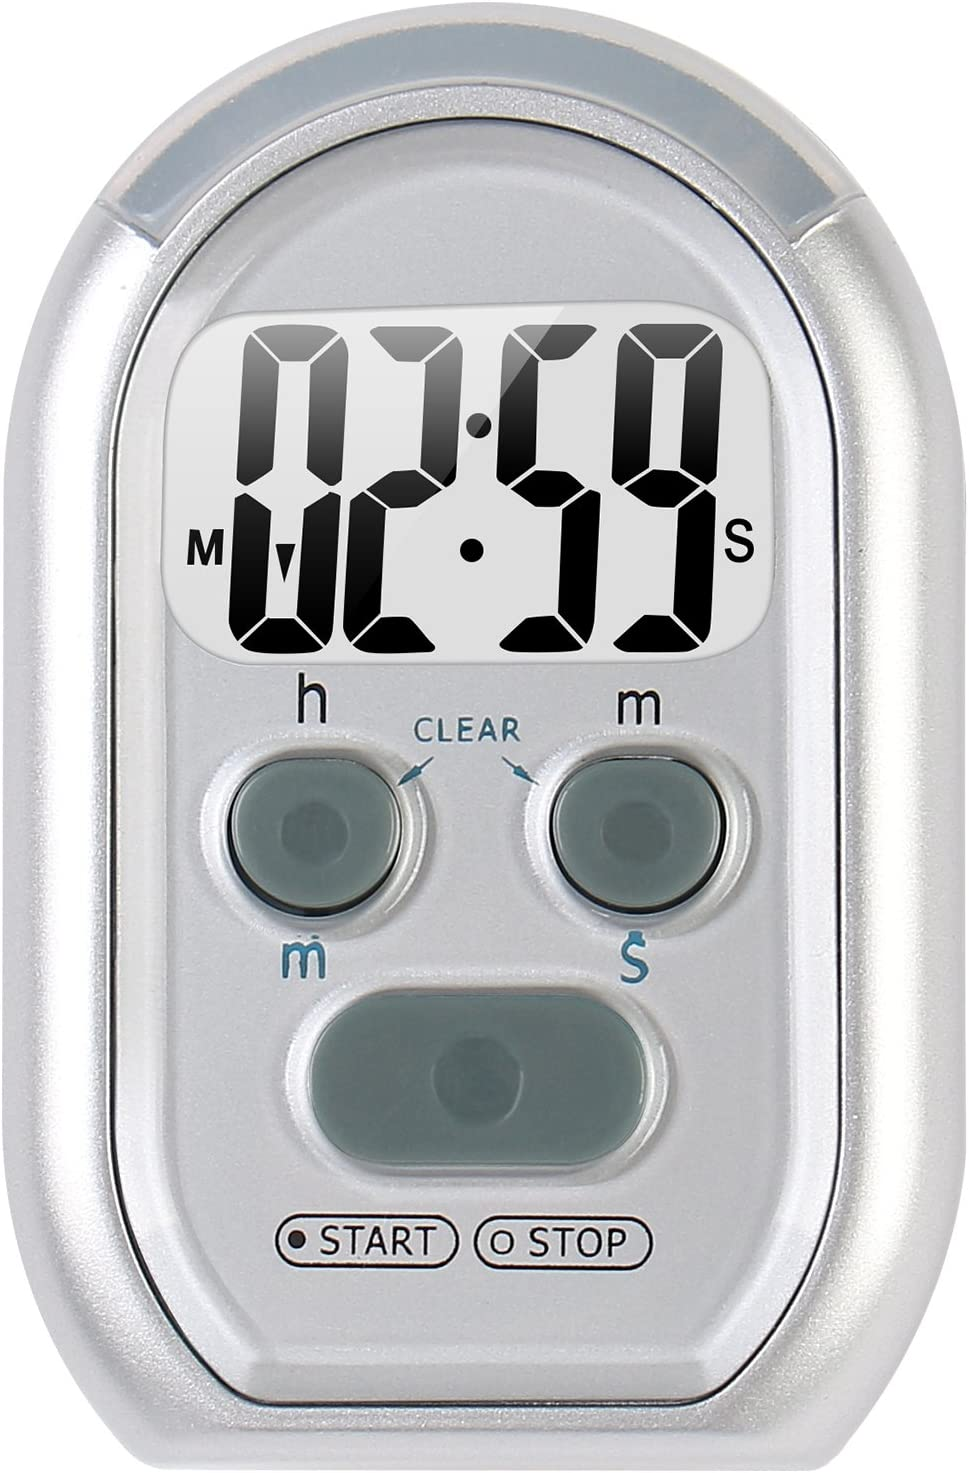 ZYQY x-wlang 3-in-1 Alerts timer 1013 with vibration ,beep and flash.(kitchen timer ,medical timer,therapeutic timer), silver